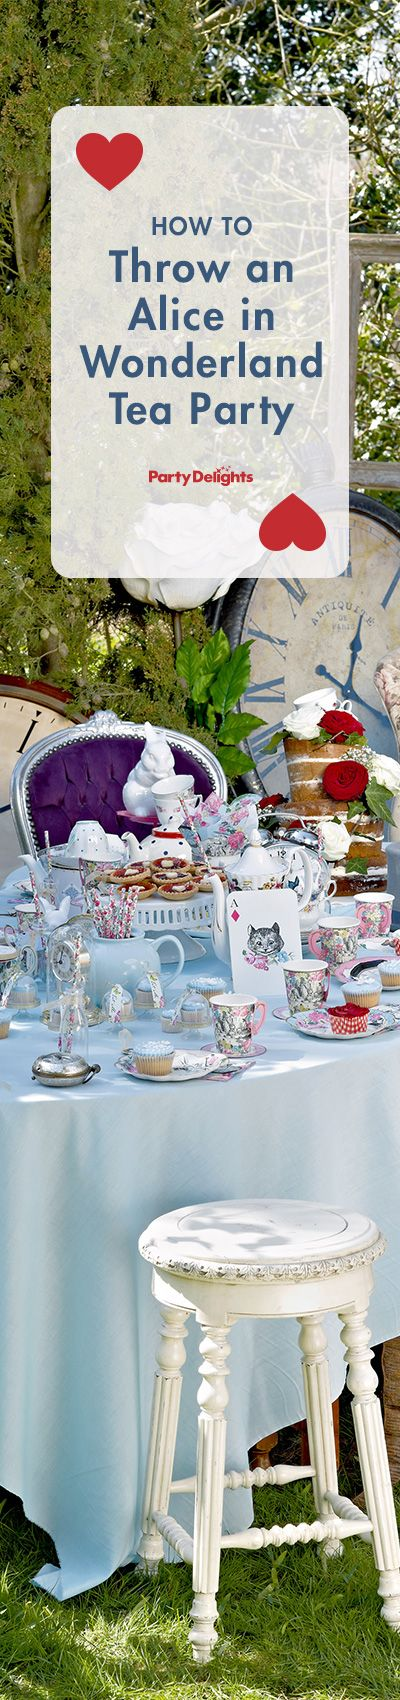 589 best images about tea party themes or set ups on - Mad hatter tea party decoration ideas ...